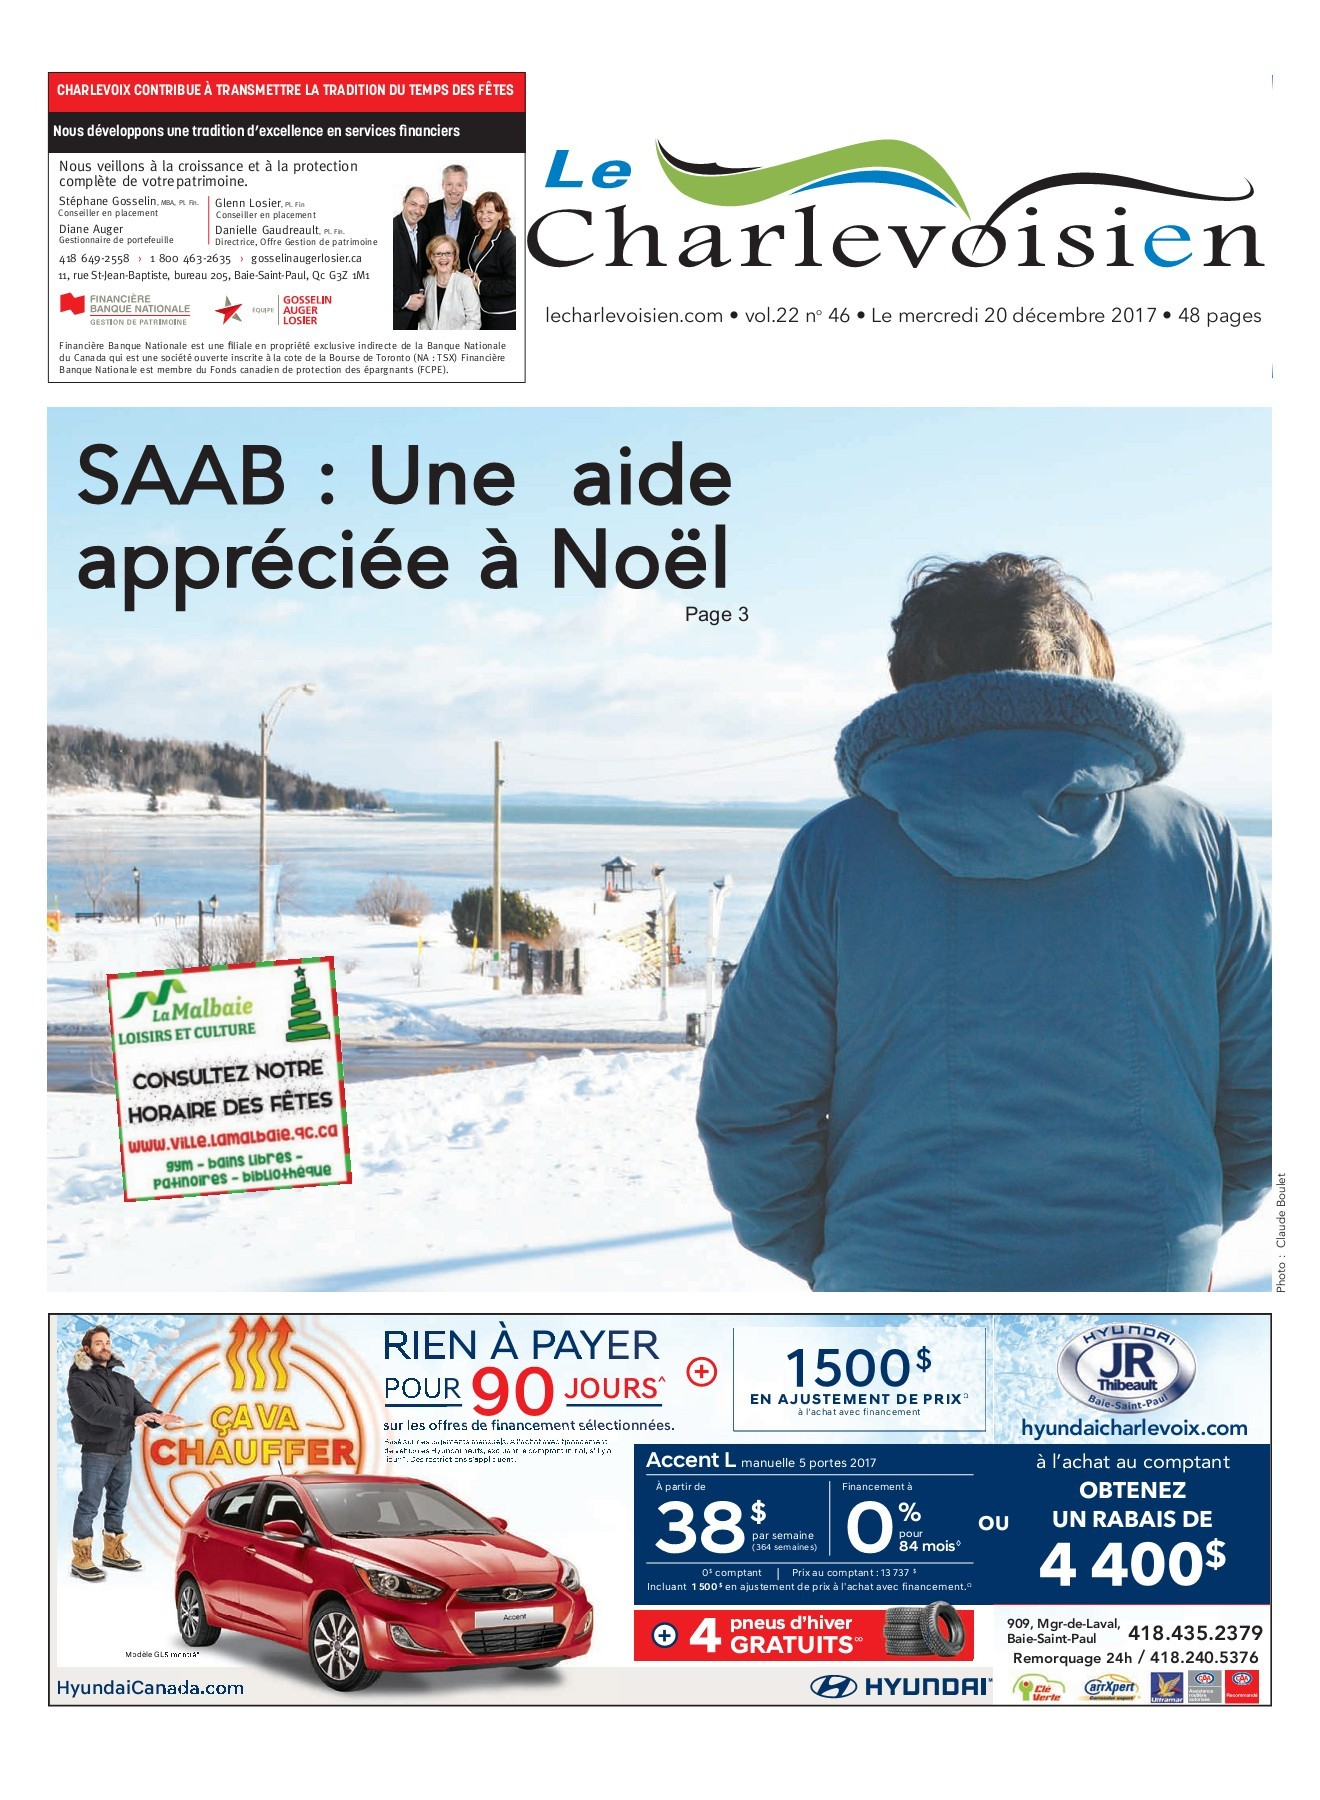 Meubles Accent Dolbeau-mistassini Le Charlevoisien 20 Decembre 2017 Pages 1 48 Text Version